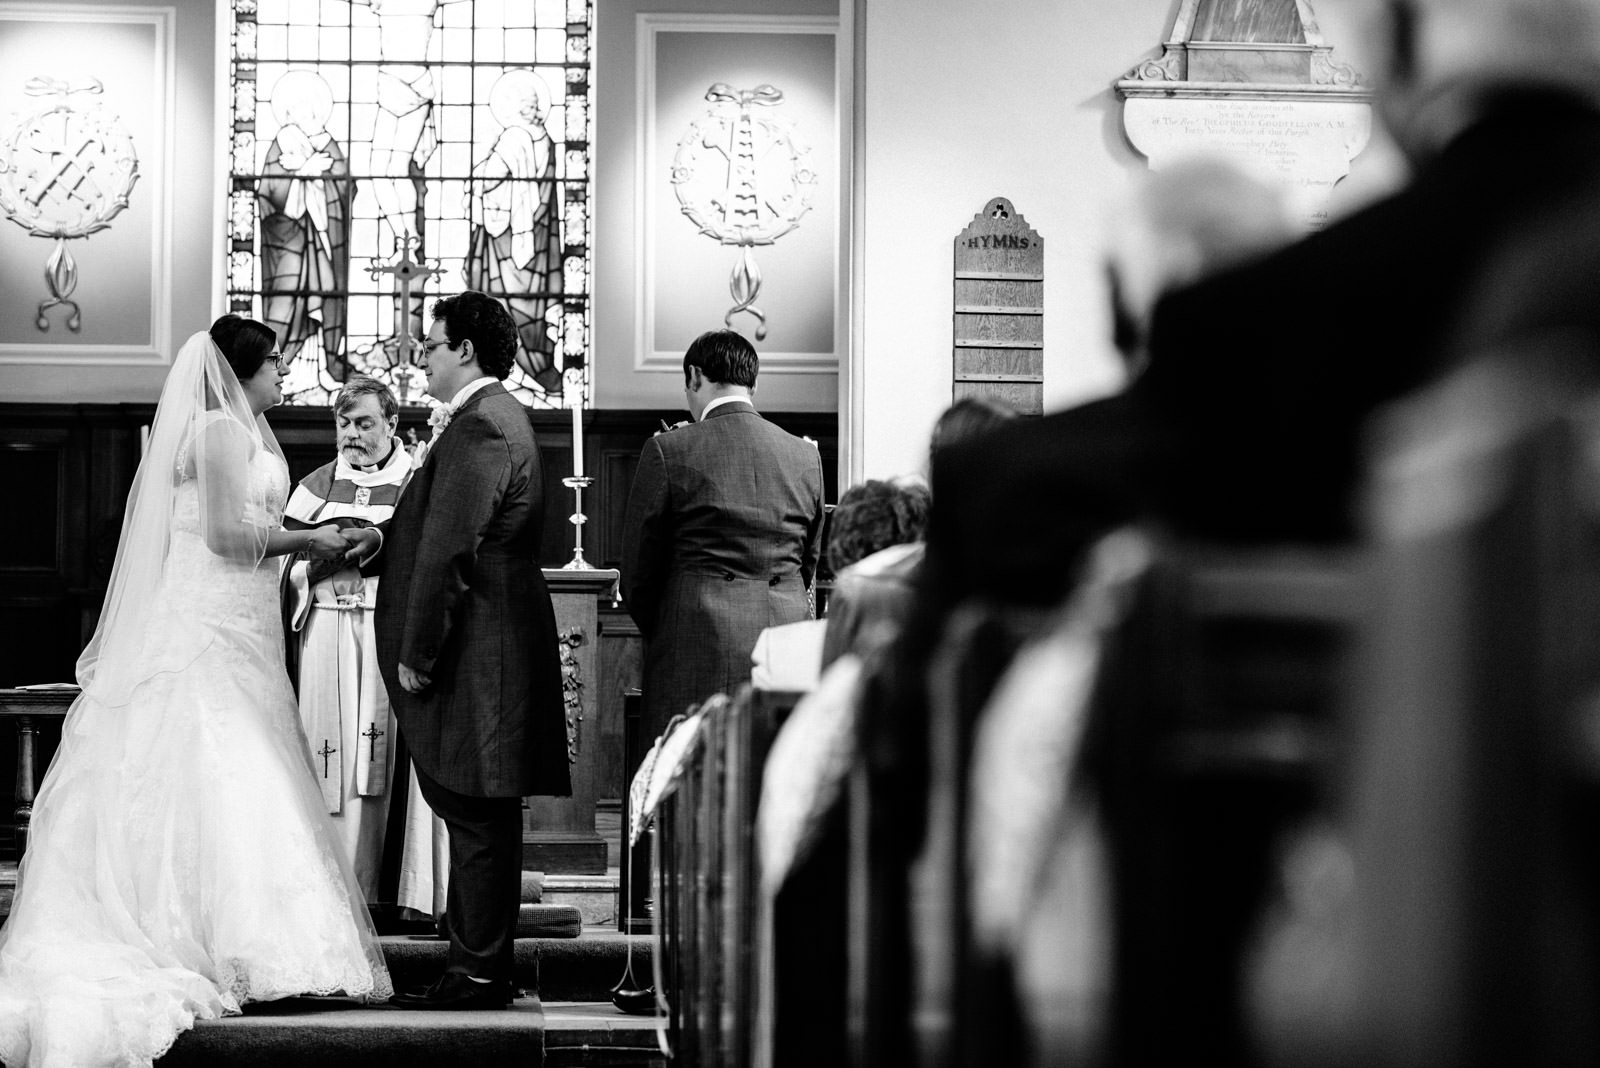 exchanging vows in the church